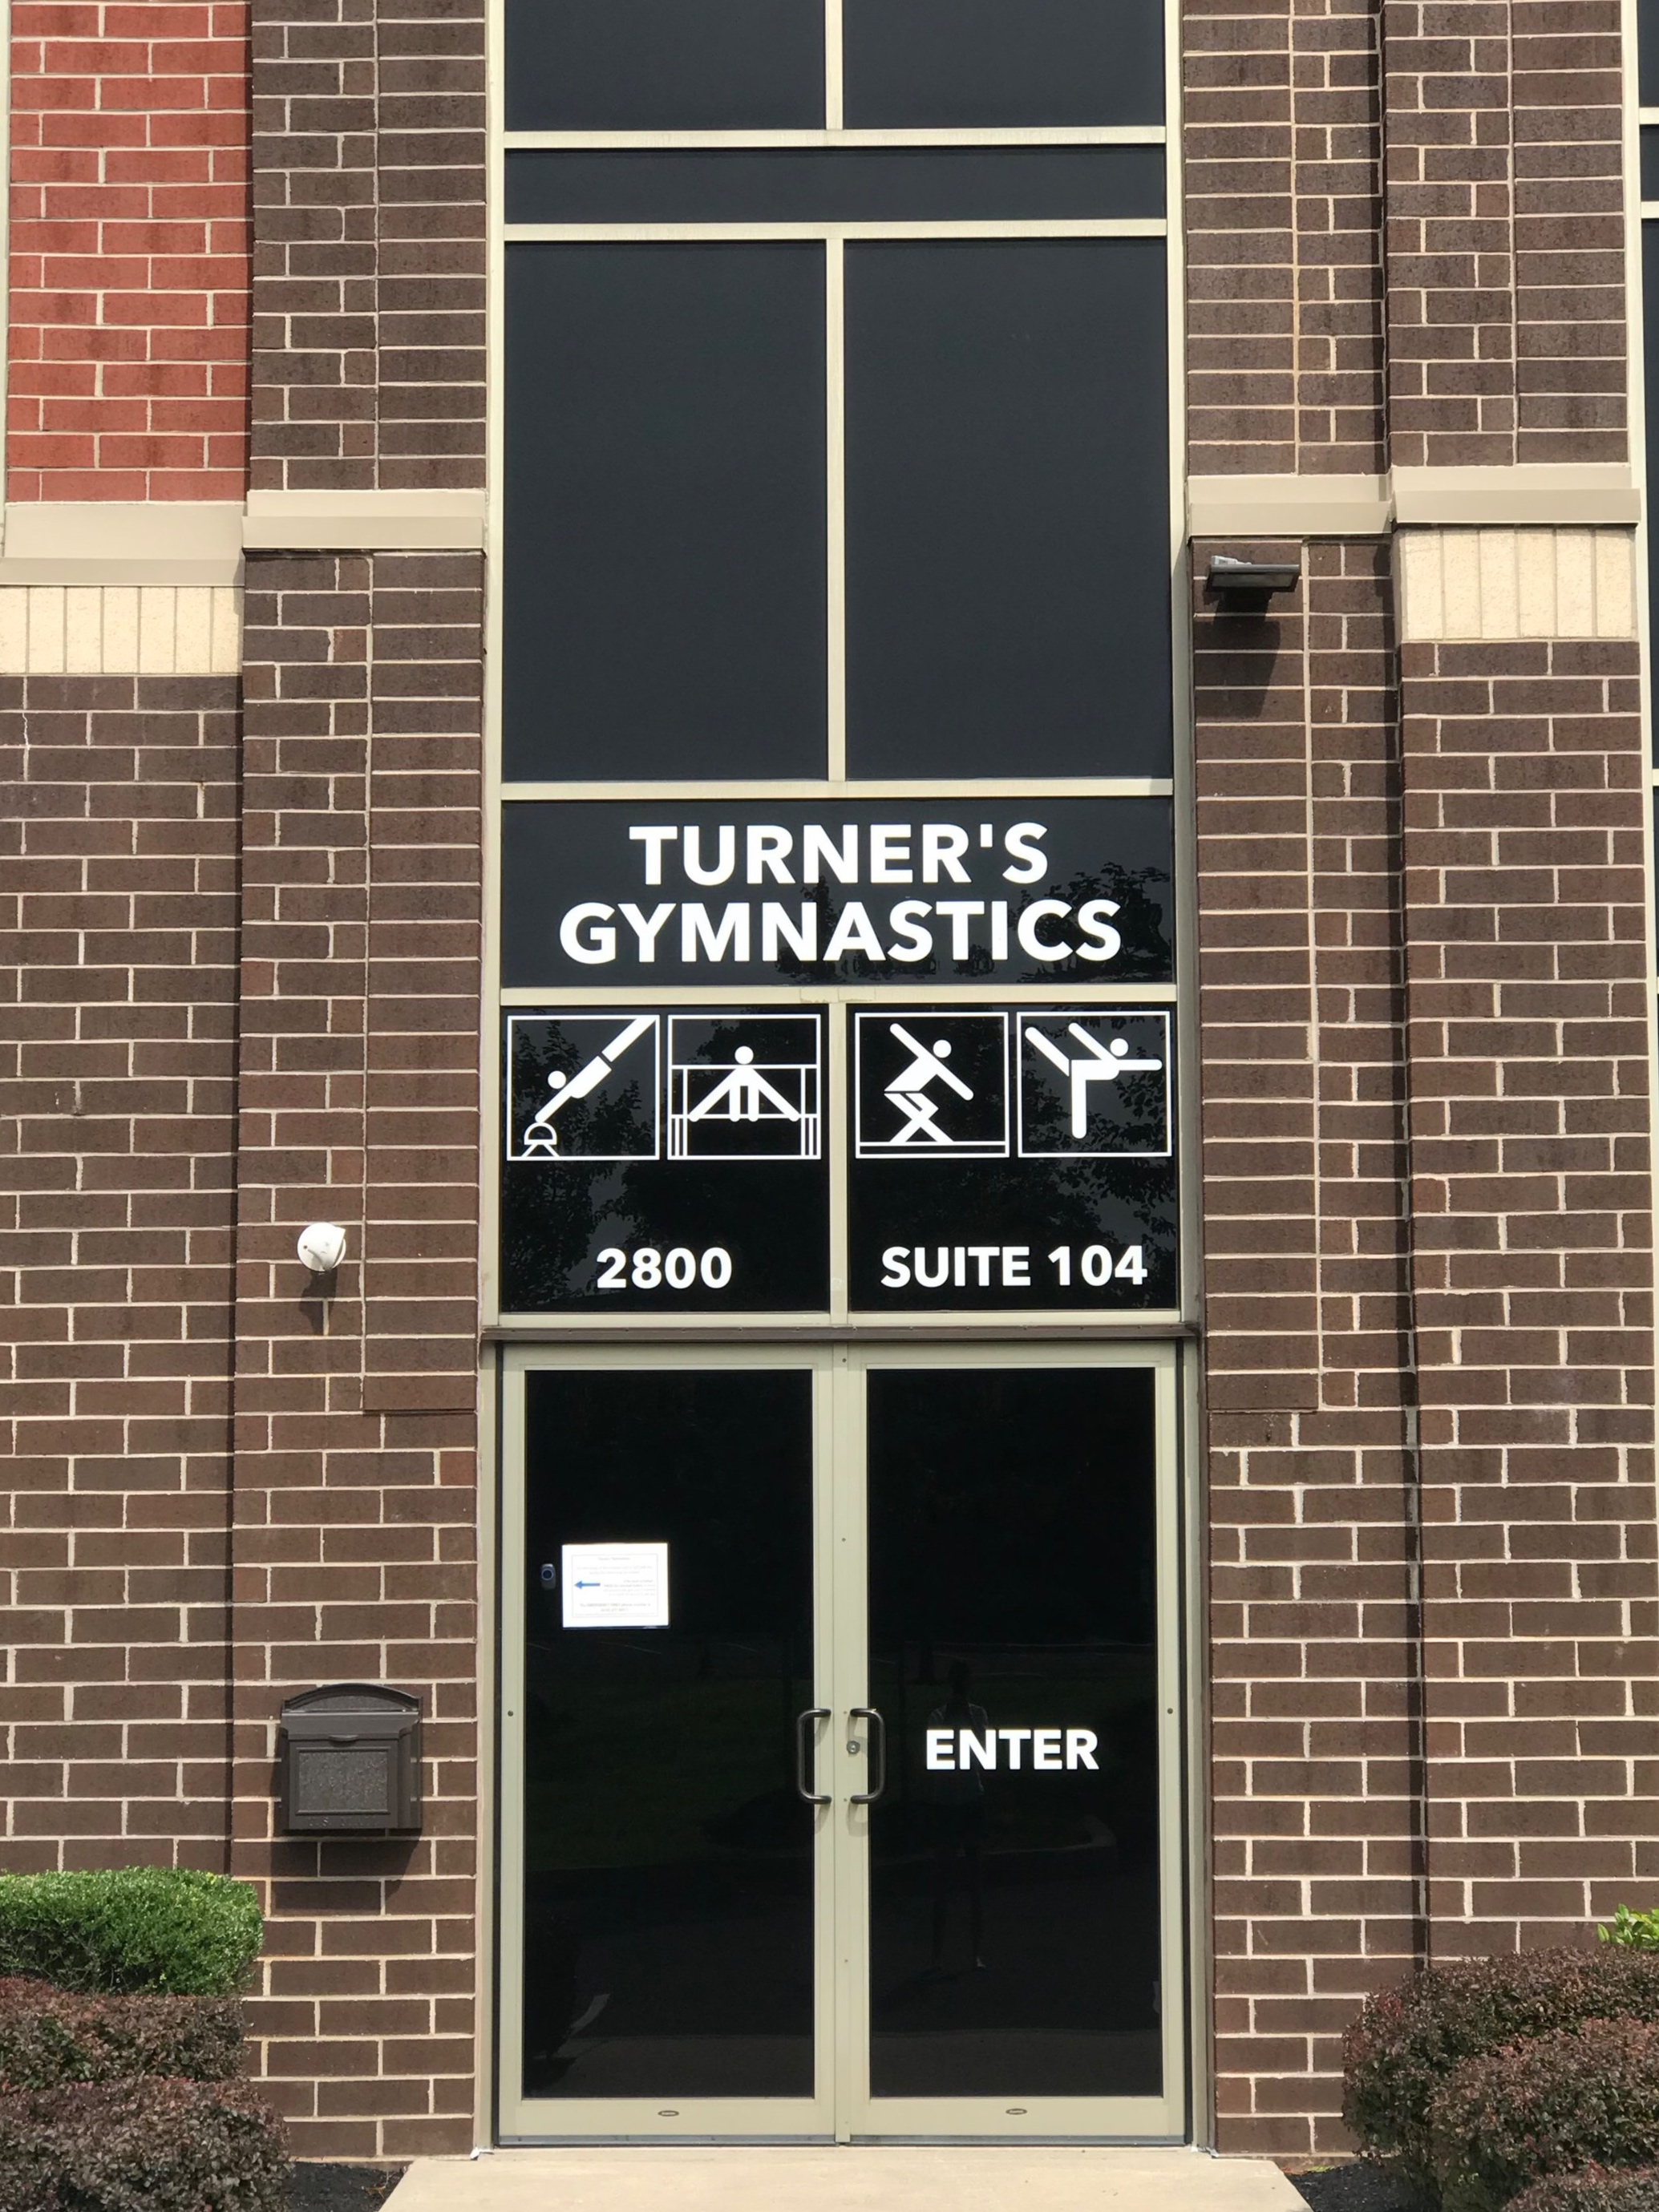 Our facility - With over 30 years of experience in children's gymnastics we have built a safe and comfortable environment for children to reach their full potential.Learn More ➝